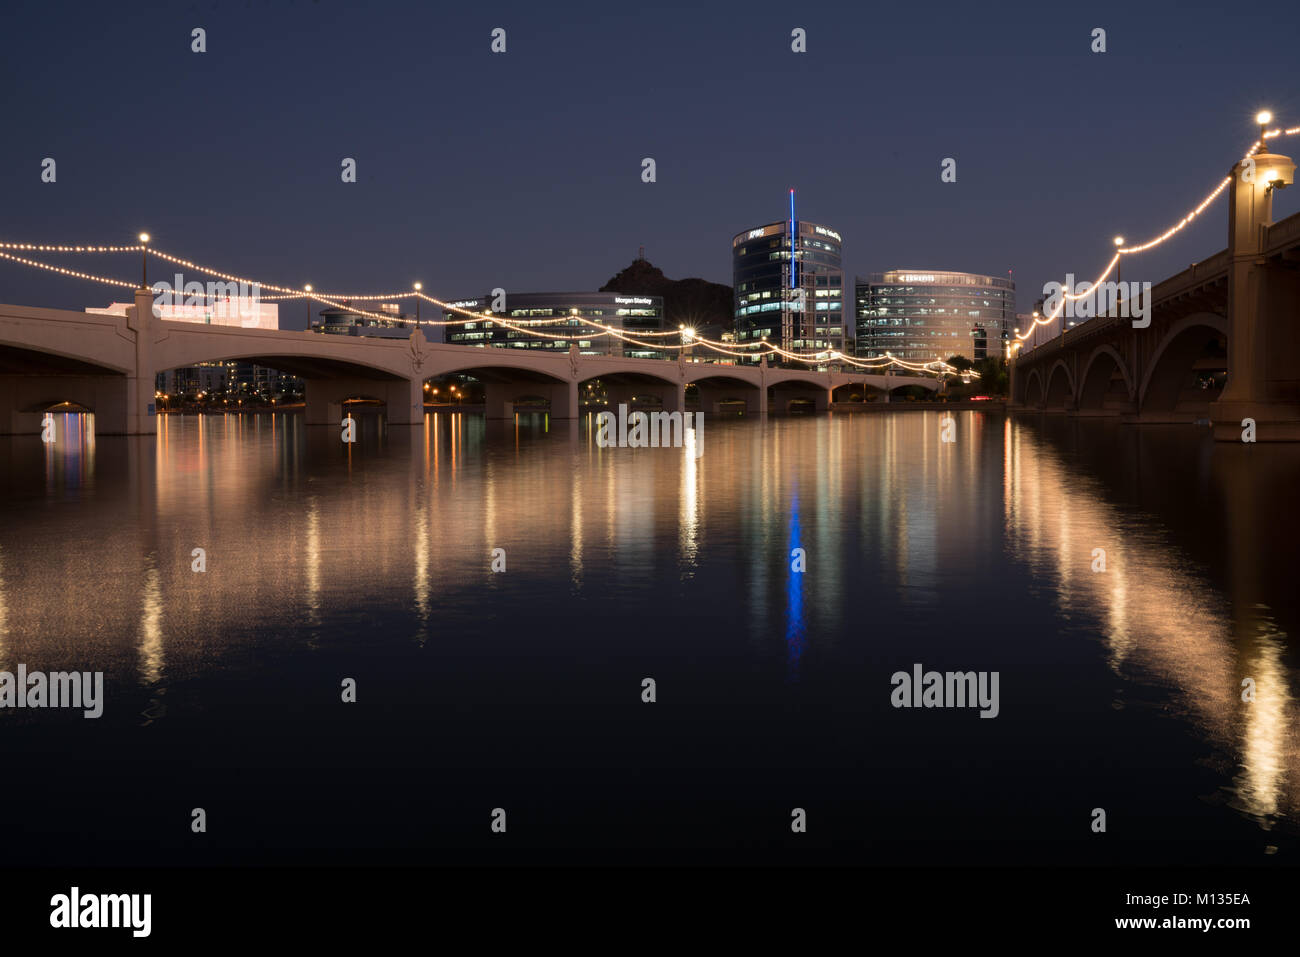 TEMPE, AZ - OCTOBER 25, 2017: The city skyline of Tempe, Arizona at night from across the Salt River at Tempe Town - Stock Image